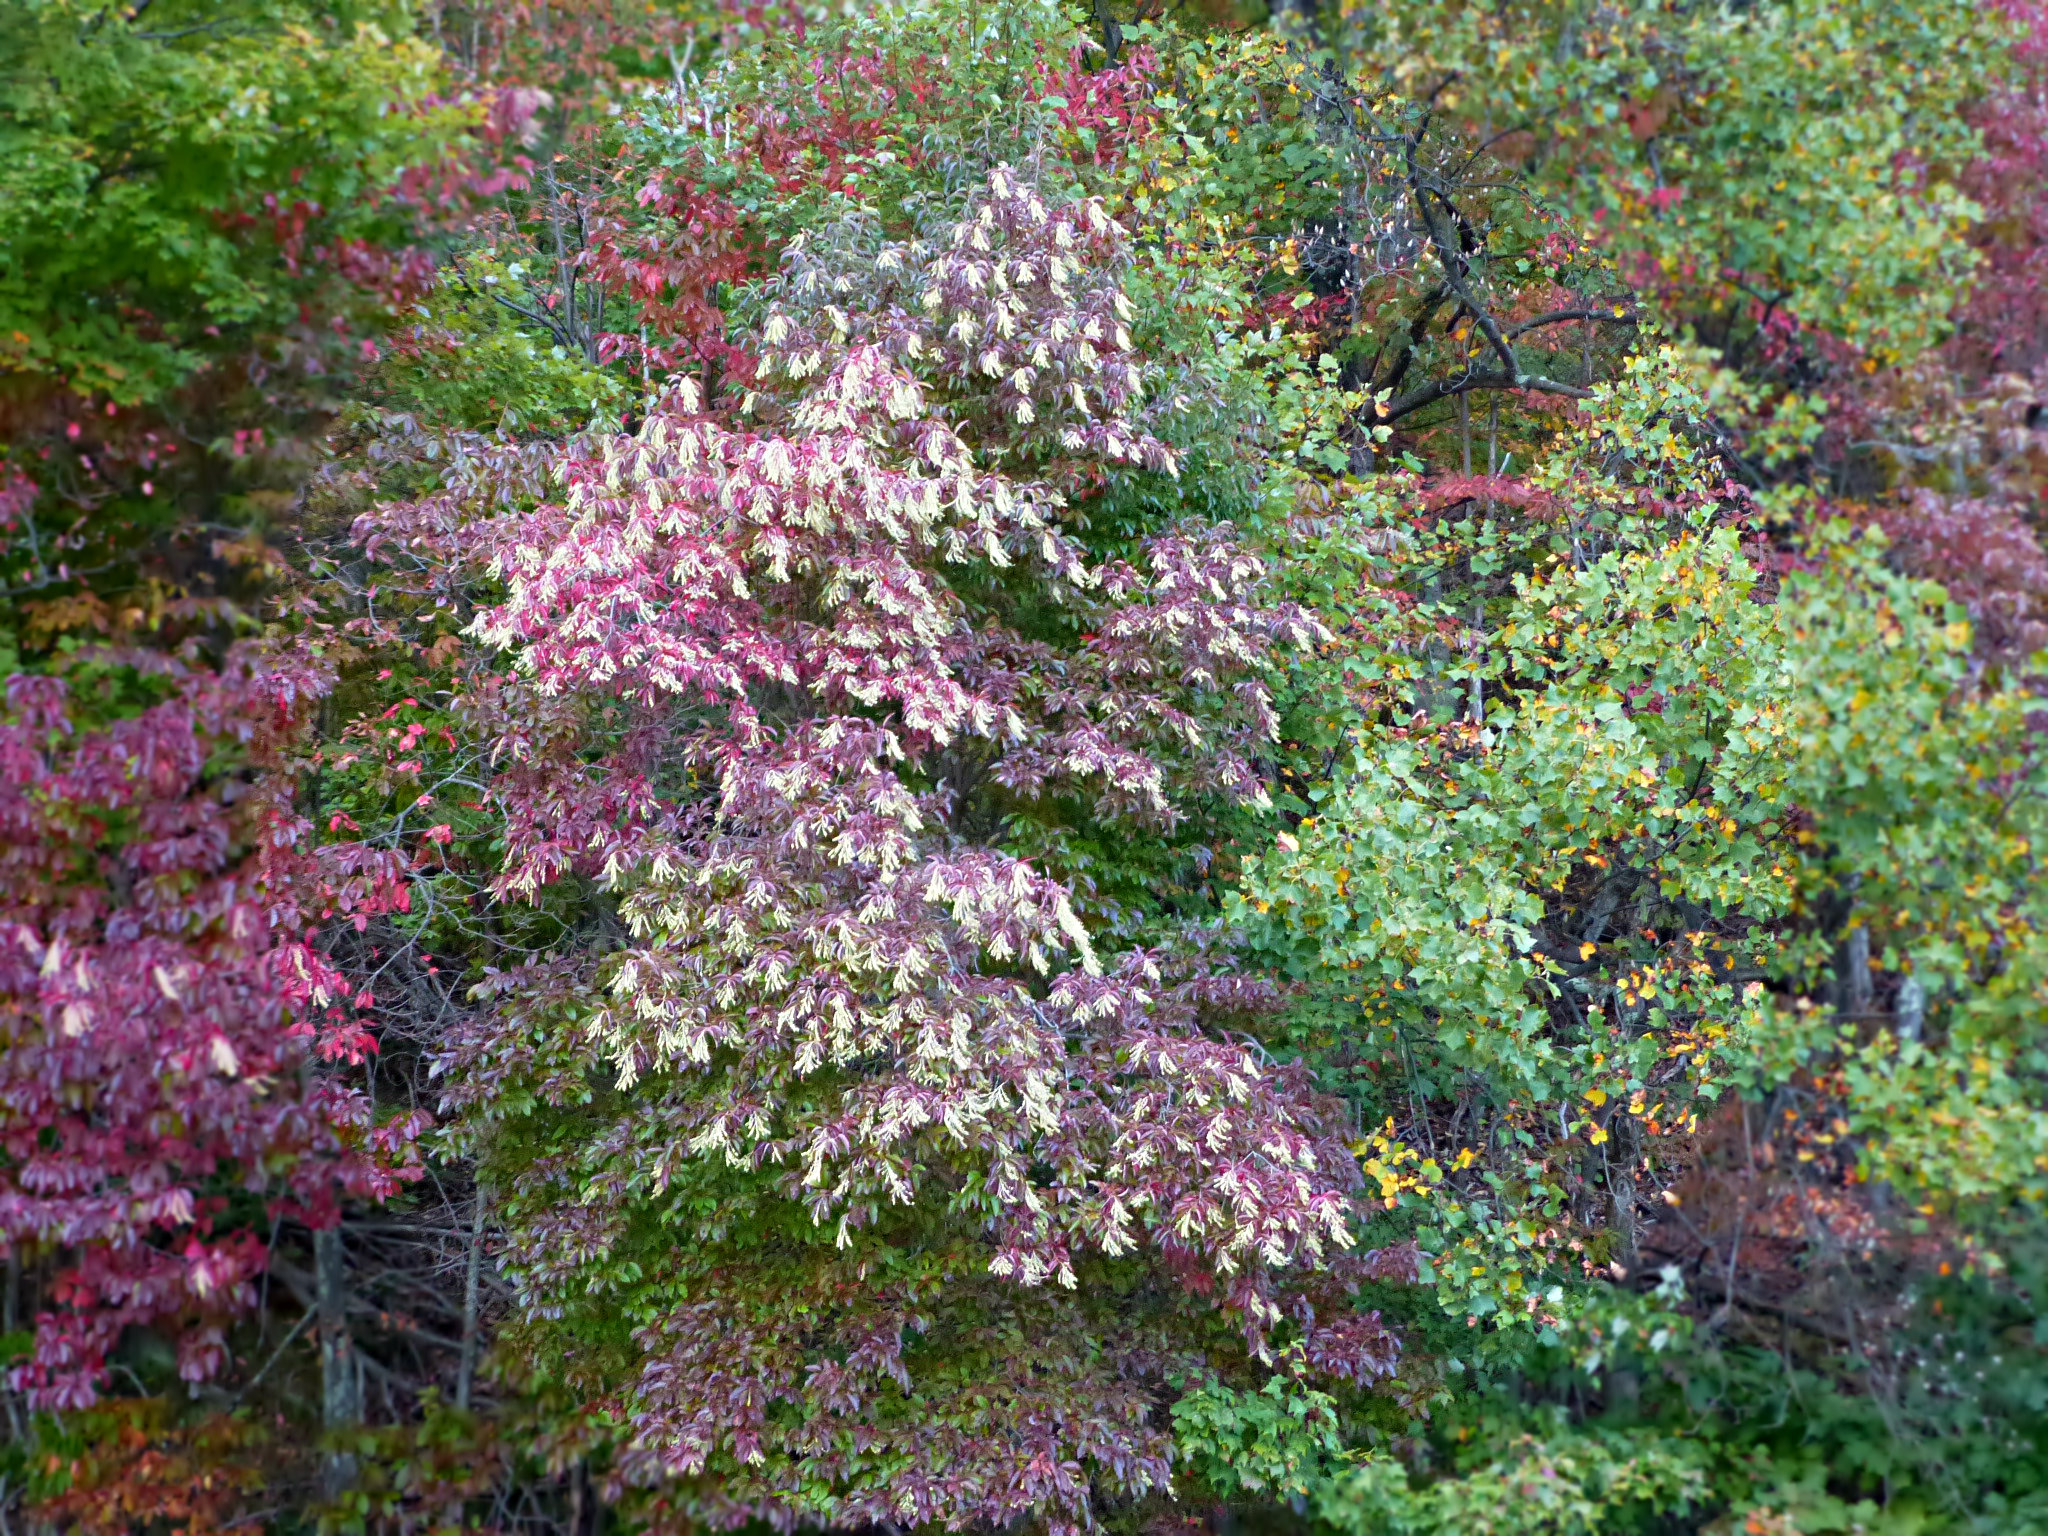 Background of trees with one that is dark red loaded with white flower fronds